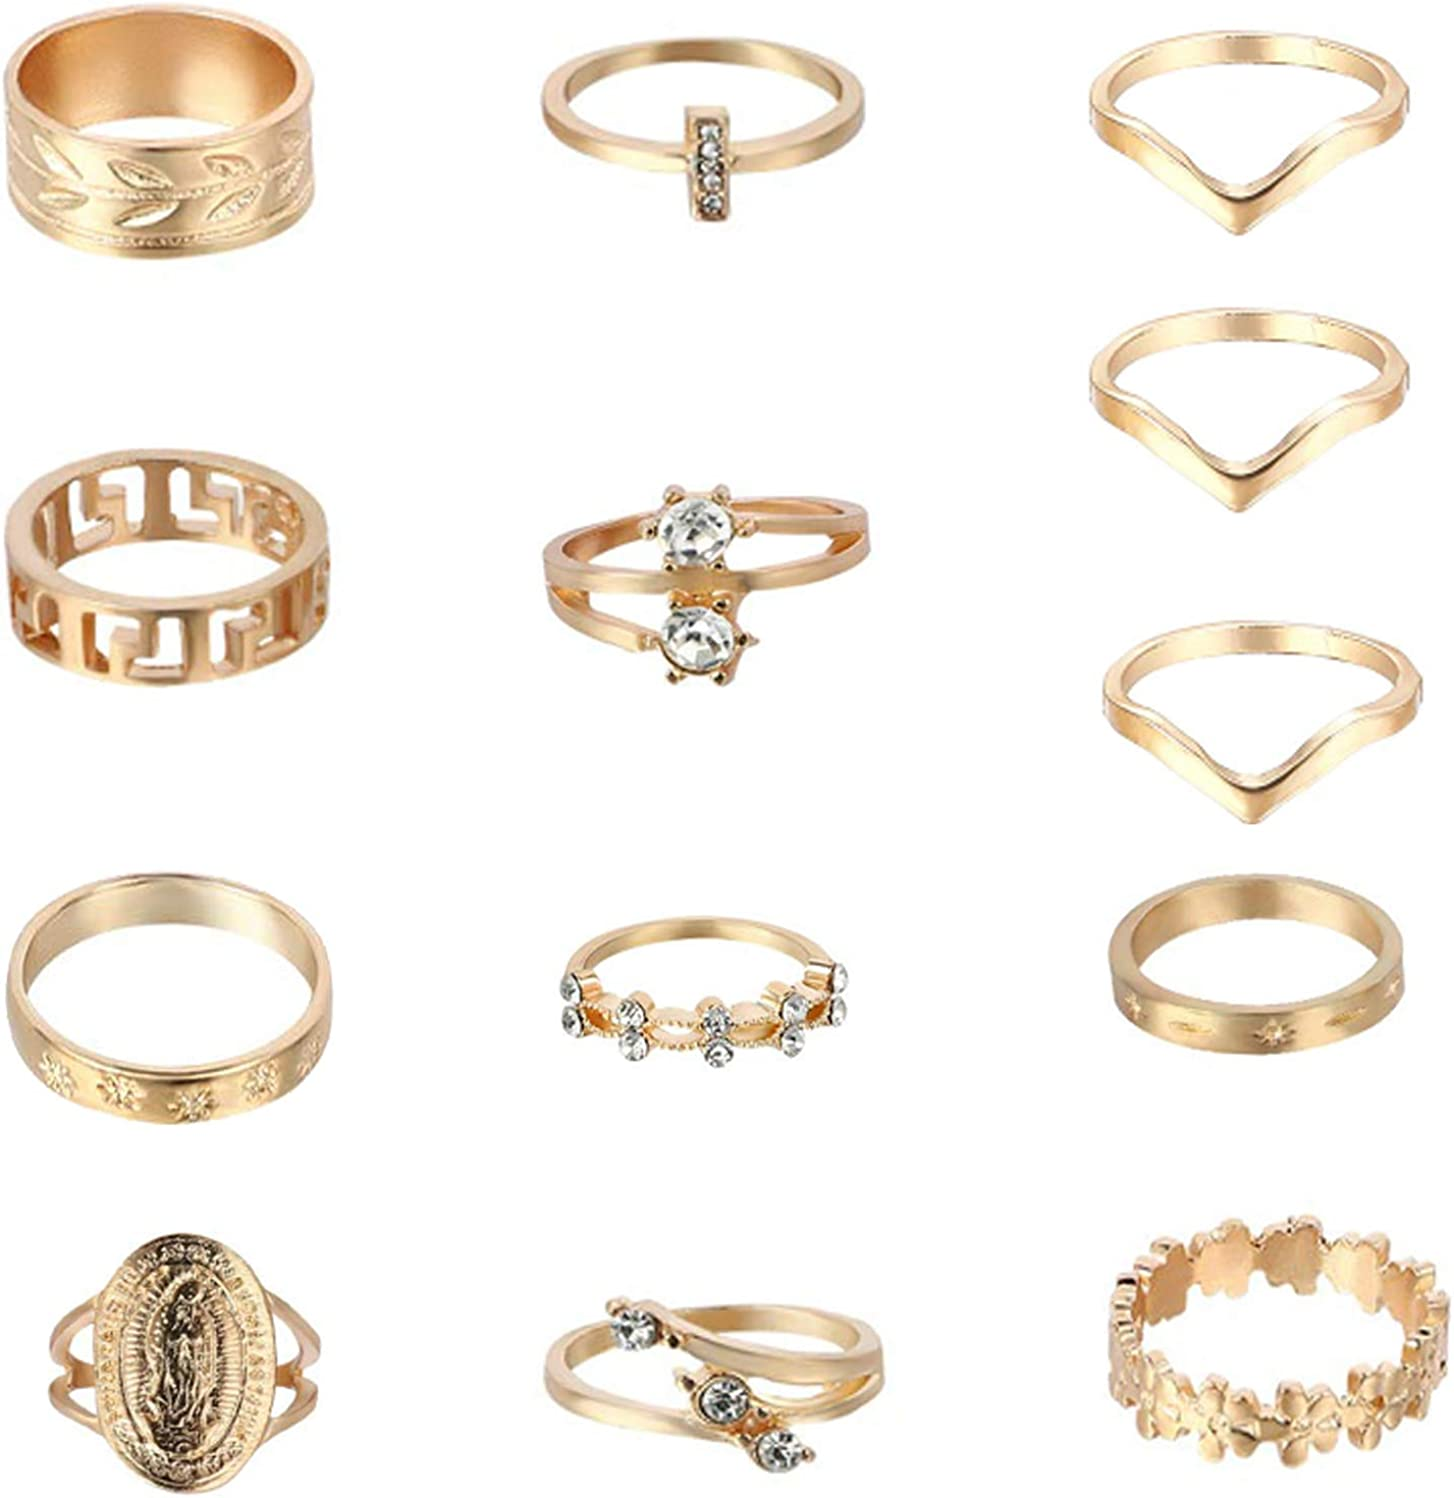 10-13Pcs Super special price Knuckle Stacking Rings for Women Set Ring Gold Free shipping / New Boho Mid